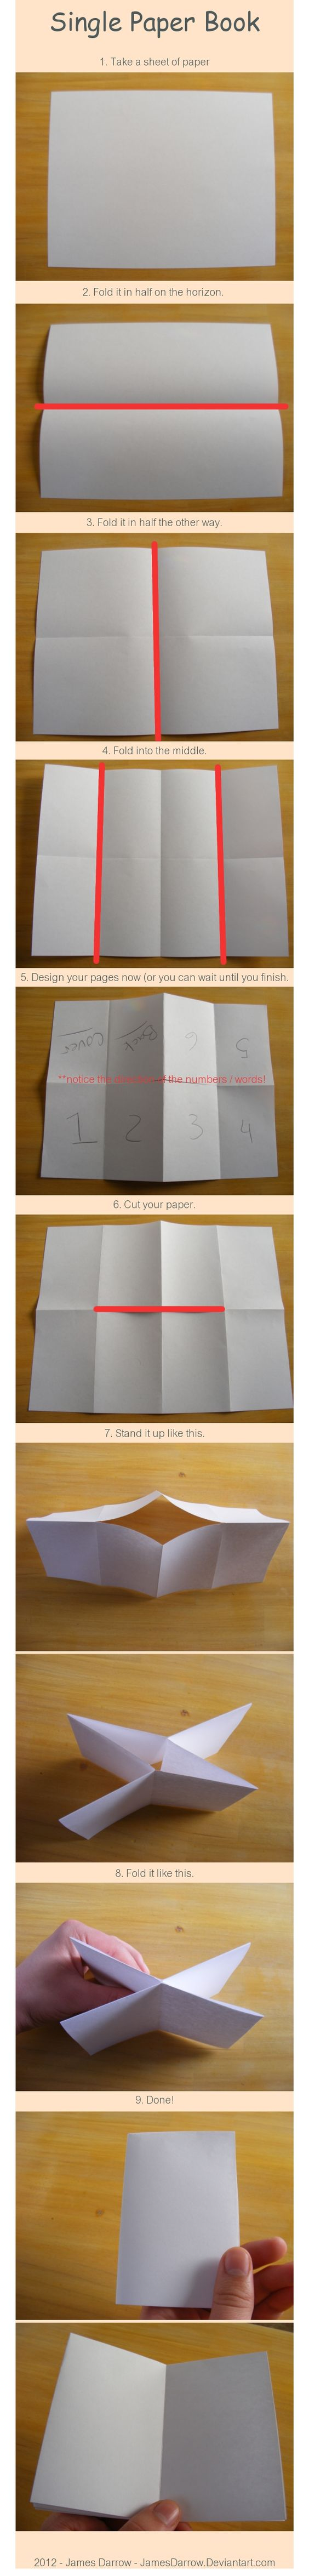 Create a little book with a single sheet of paper -- graph paper or plain.